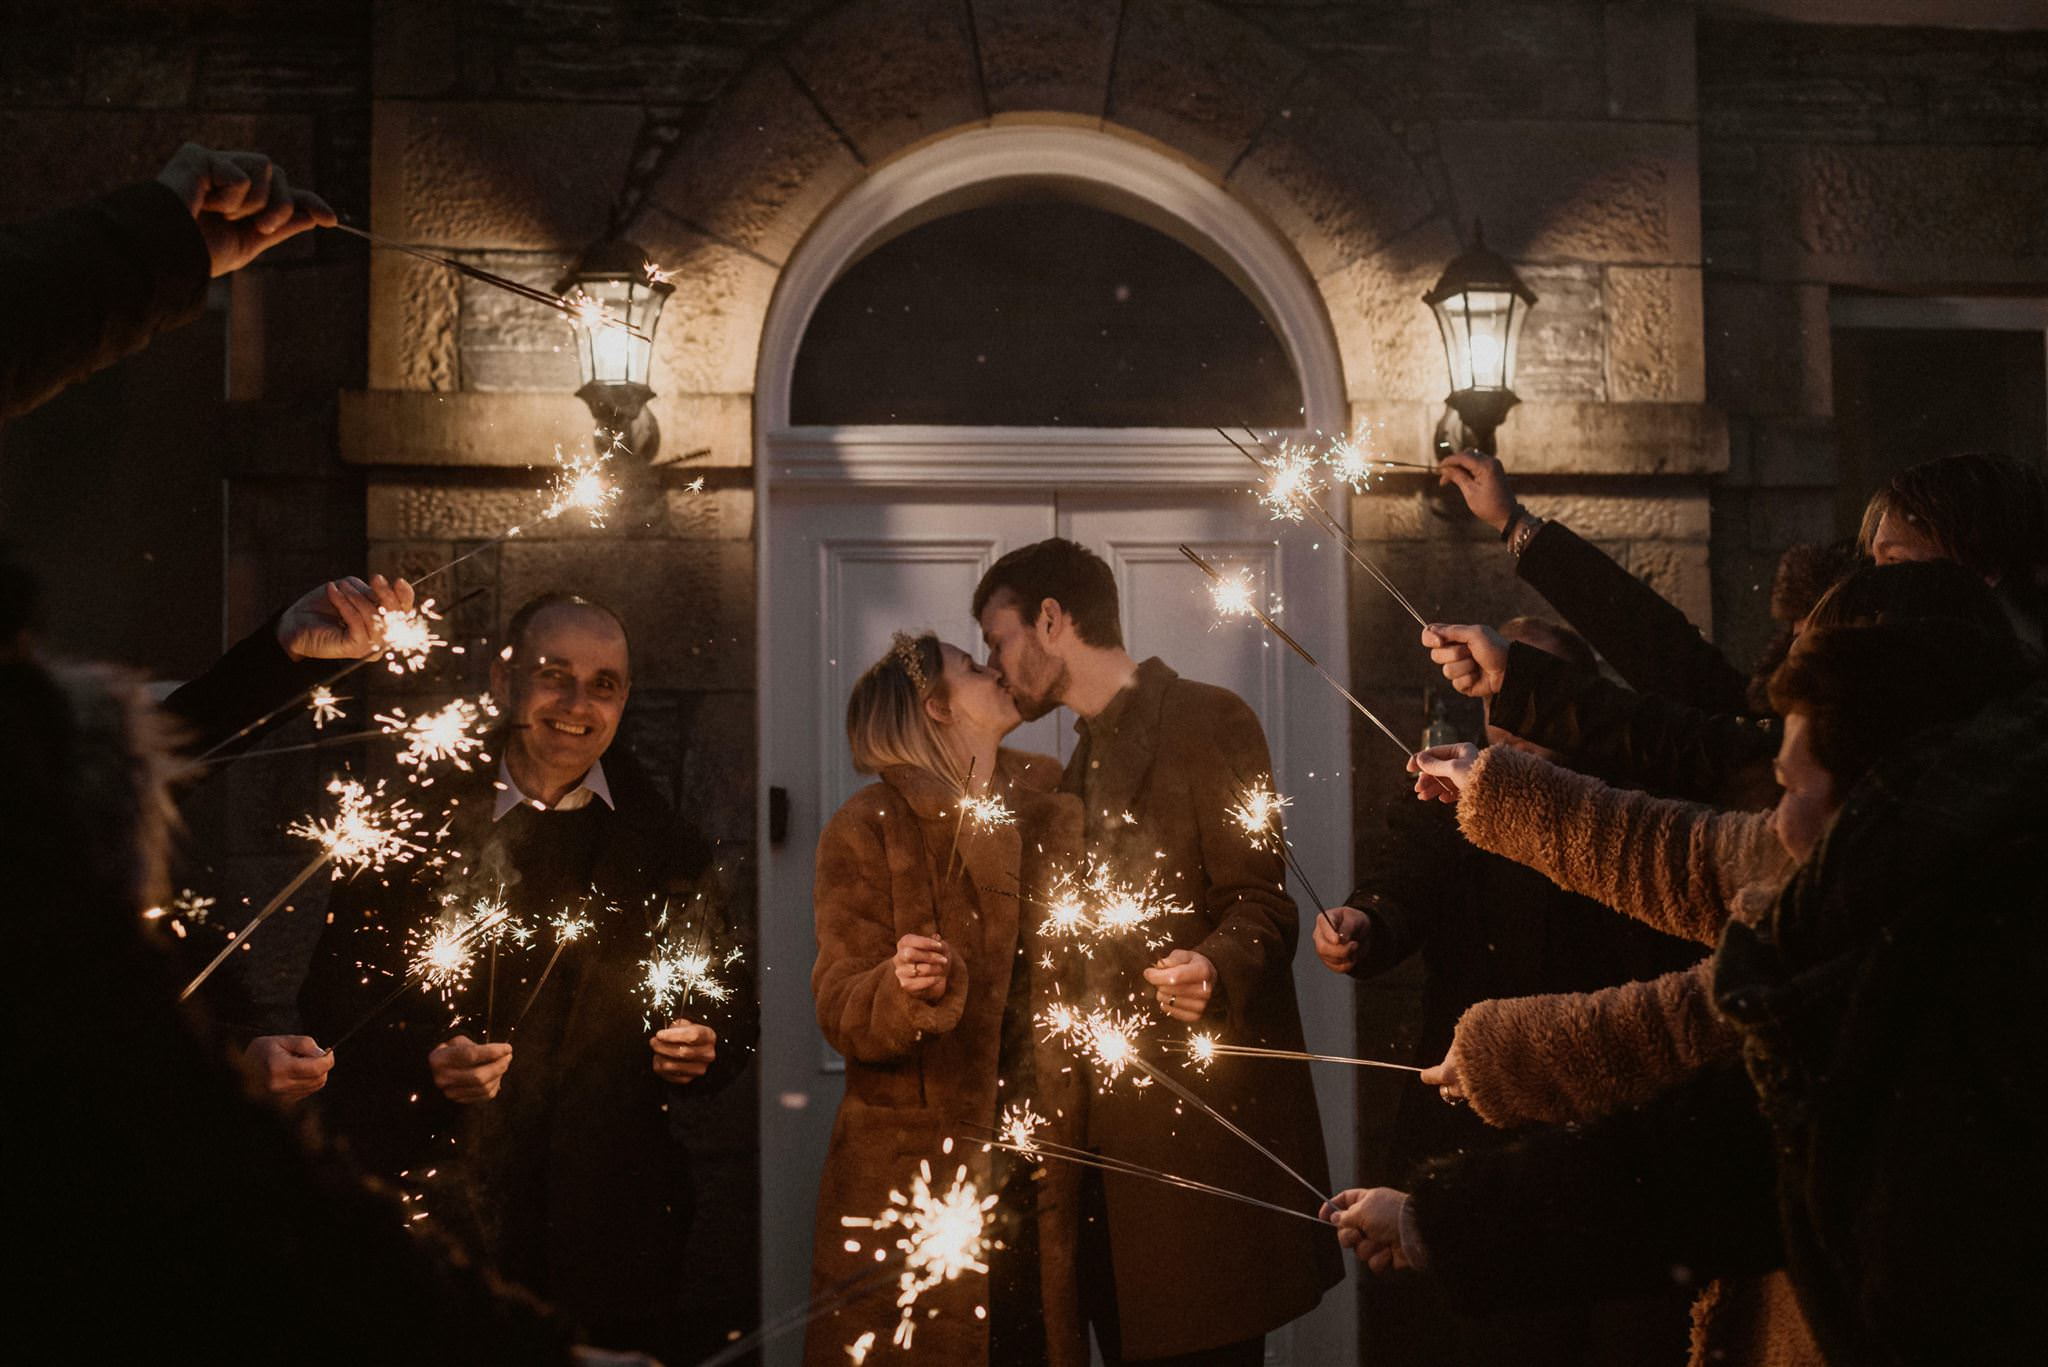 Scotland elopement sparklers wedding photography